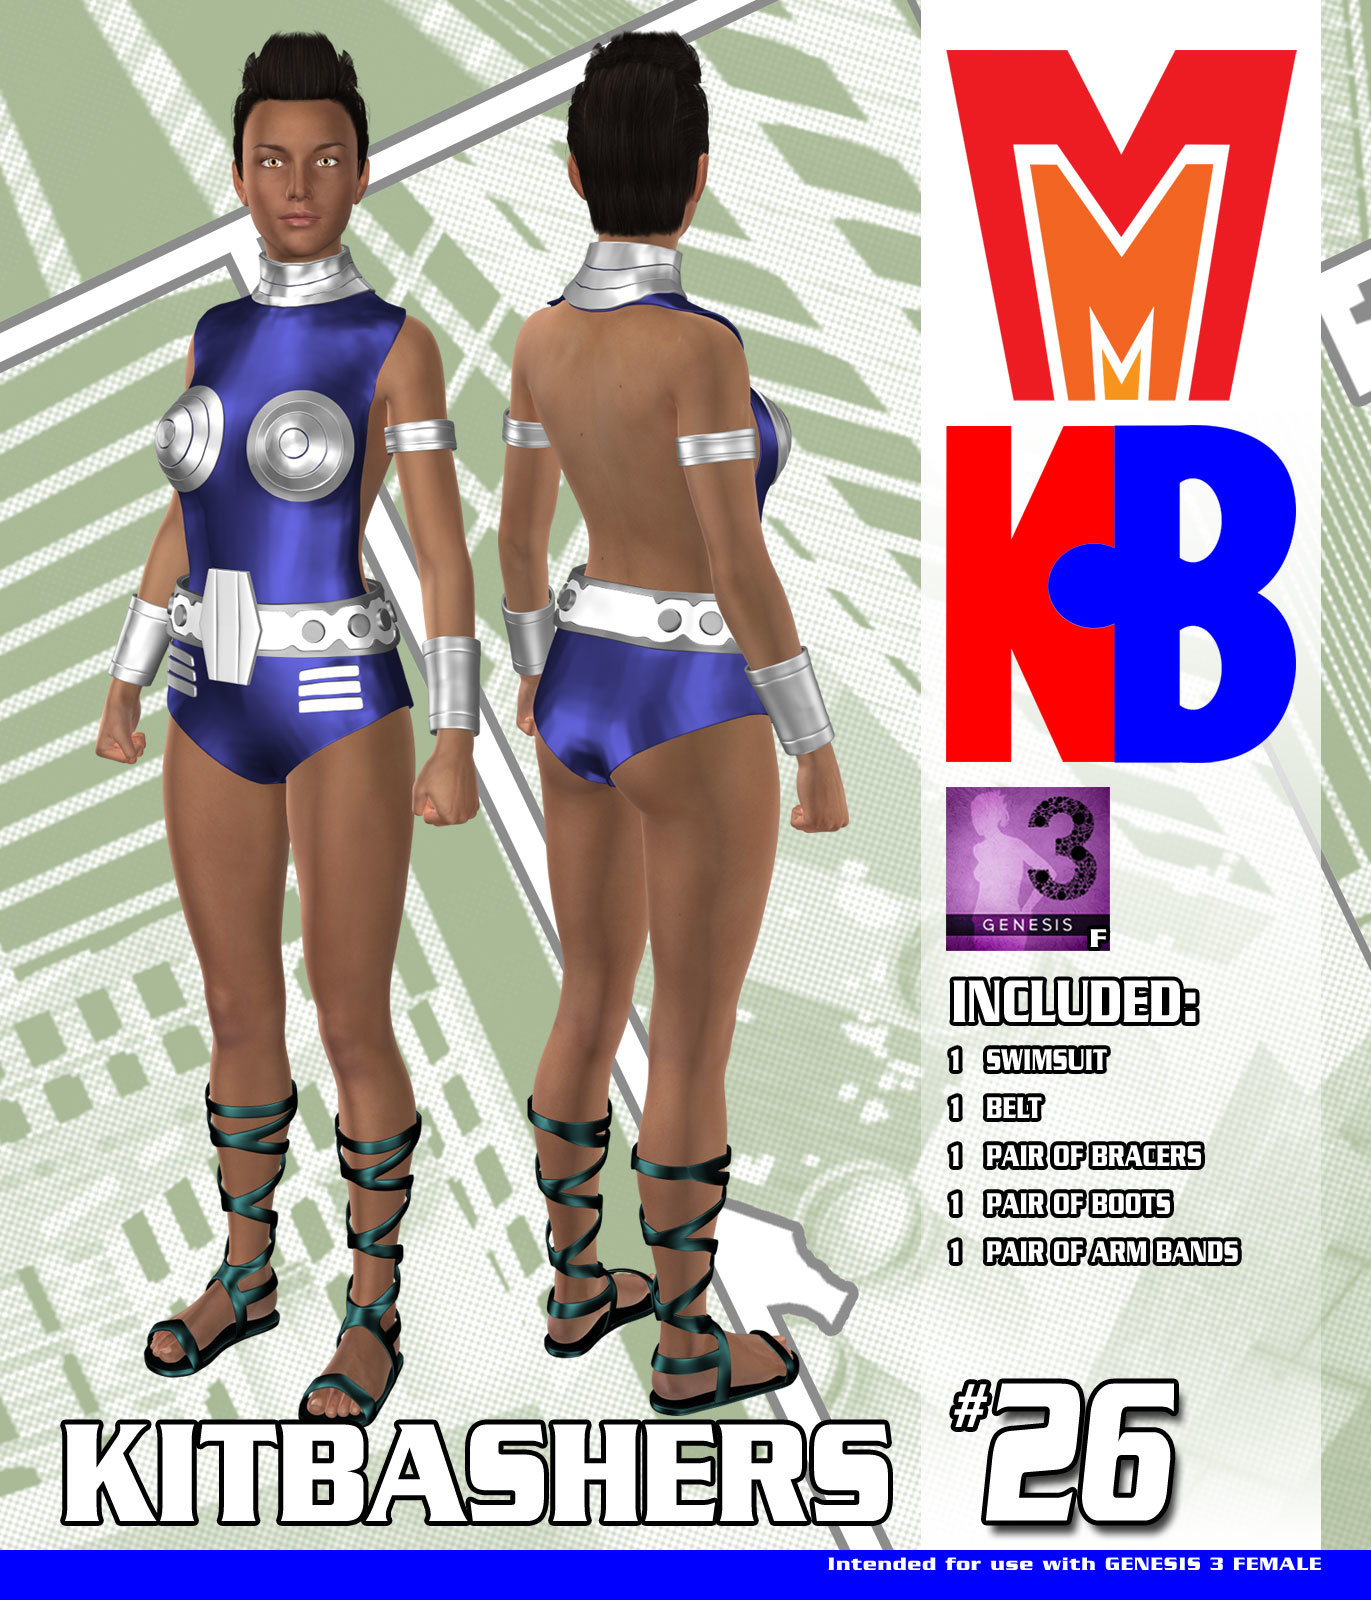 Kitbashers 026 MMG3F by MightyMite